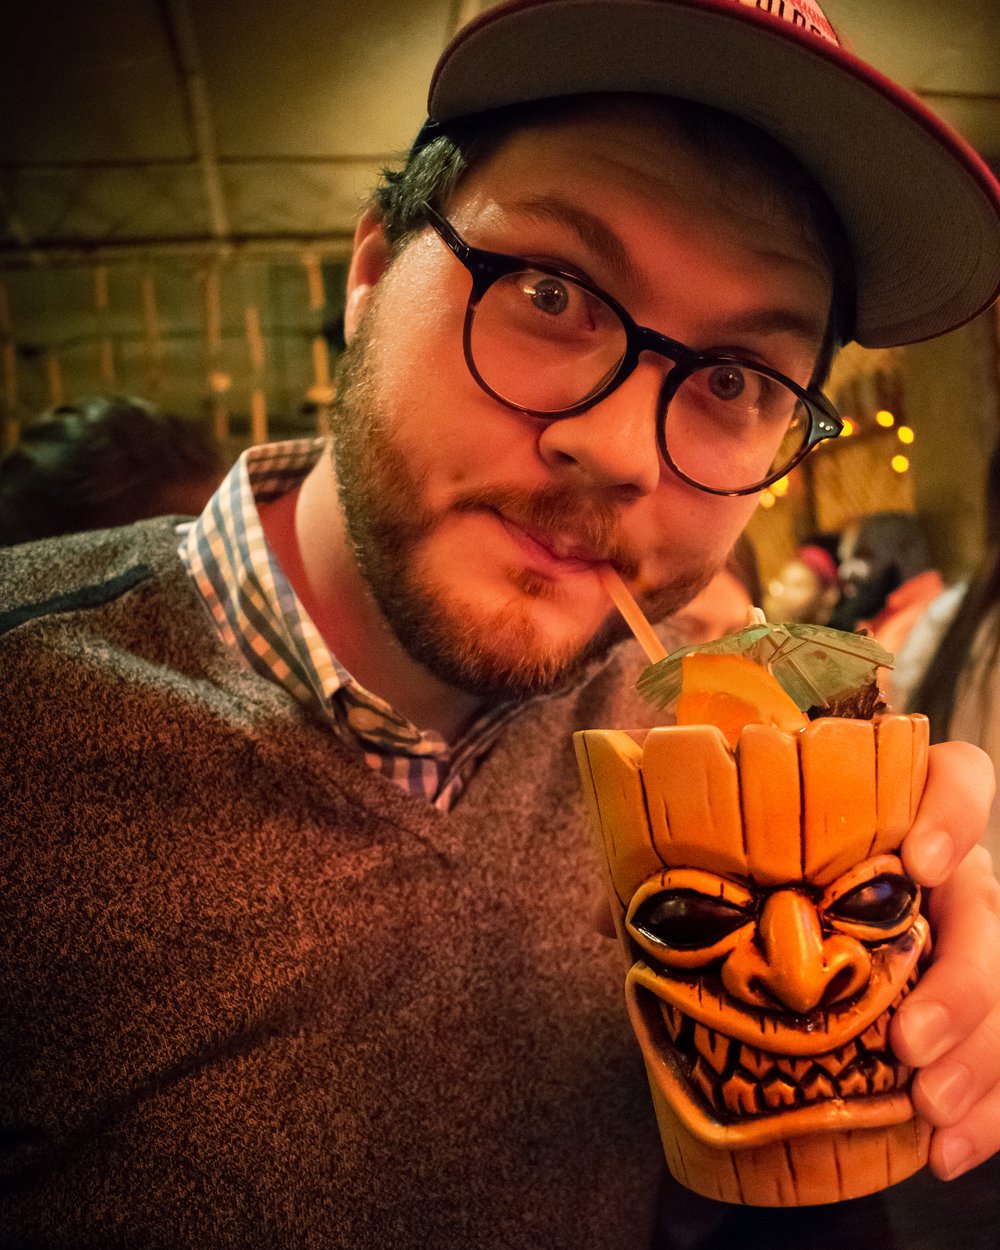 uprooted-traveler-psycho-suzis-minneapolis-st-paul-tiki-drink-motor-lounge.jpg